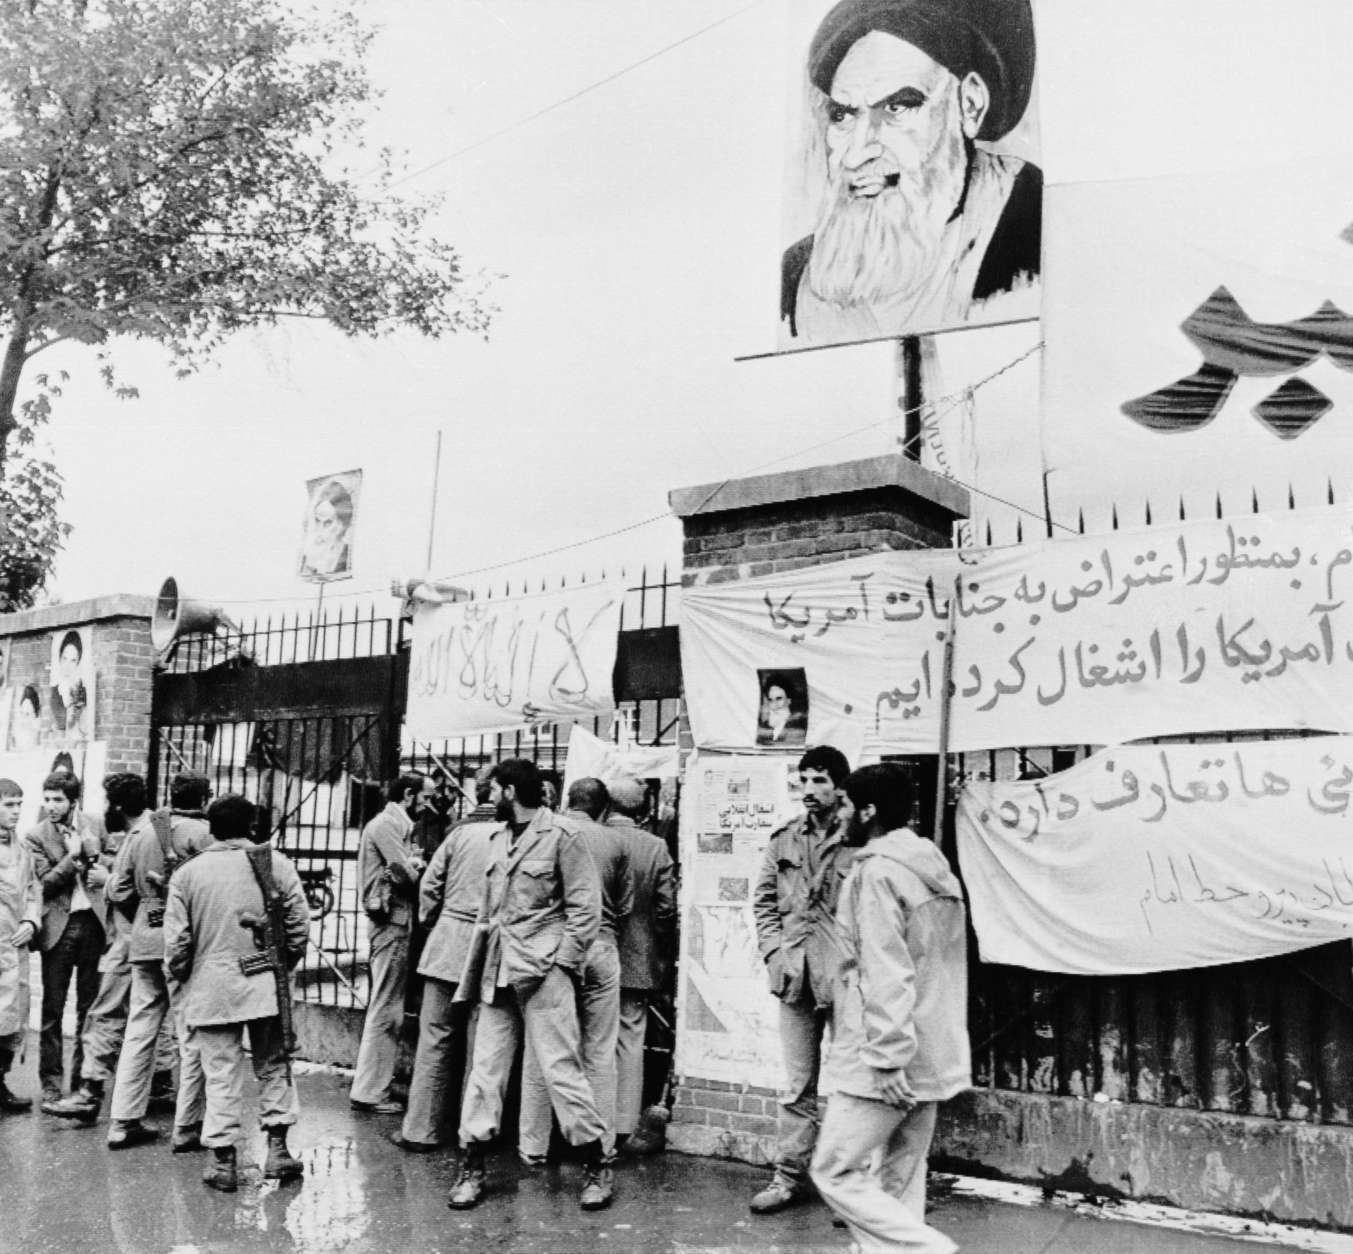 FILE - In this Nov. 6, 1979 file photo, students stand guard before the entrance of the United States Embassy where staff is being held hostage in Tehran, as a portrait of Ayatollah Khomeini is on display. The Obama administration asked a federal judge Tuesday, April 21, 2009 to throw out a lawsuit against Iran filed by Americans held hostage at the embassy in Tehran 30 years ago. In court papers filed Tuesday night, the Justice Department argued that the agreement to release the hostages precluded lawsuits against Iran. (AP Photo/File)